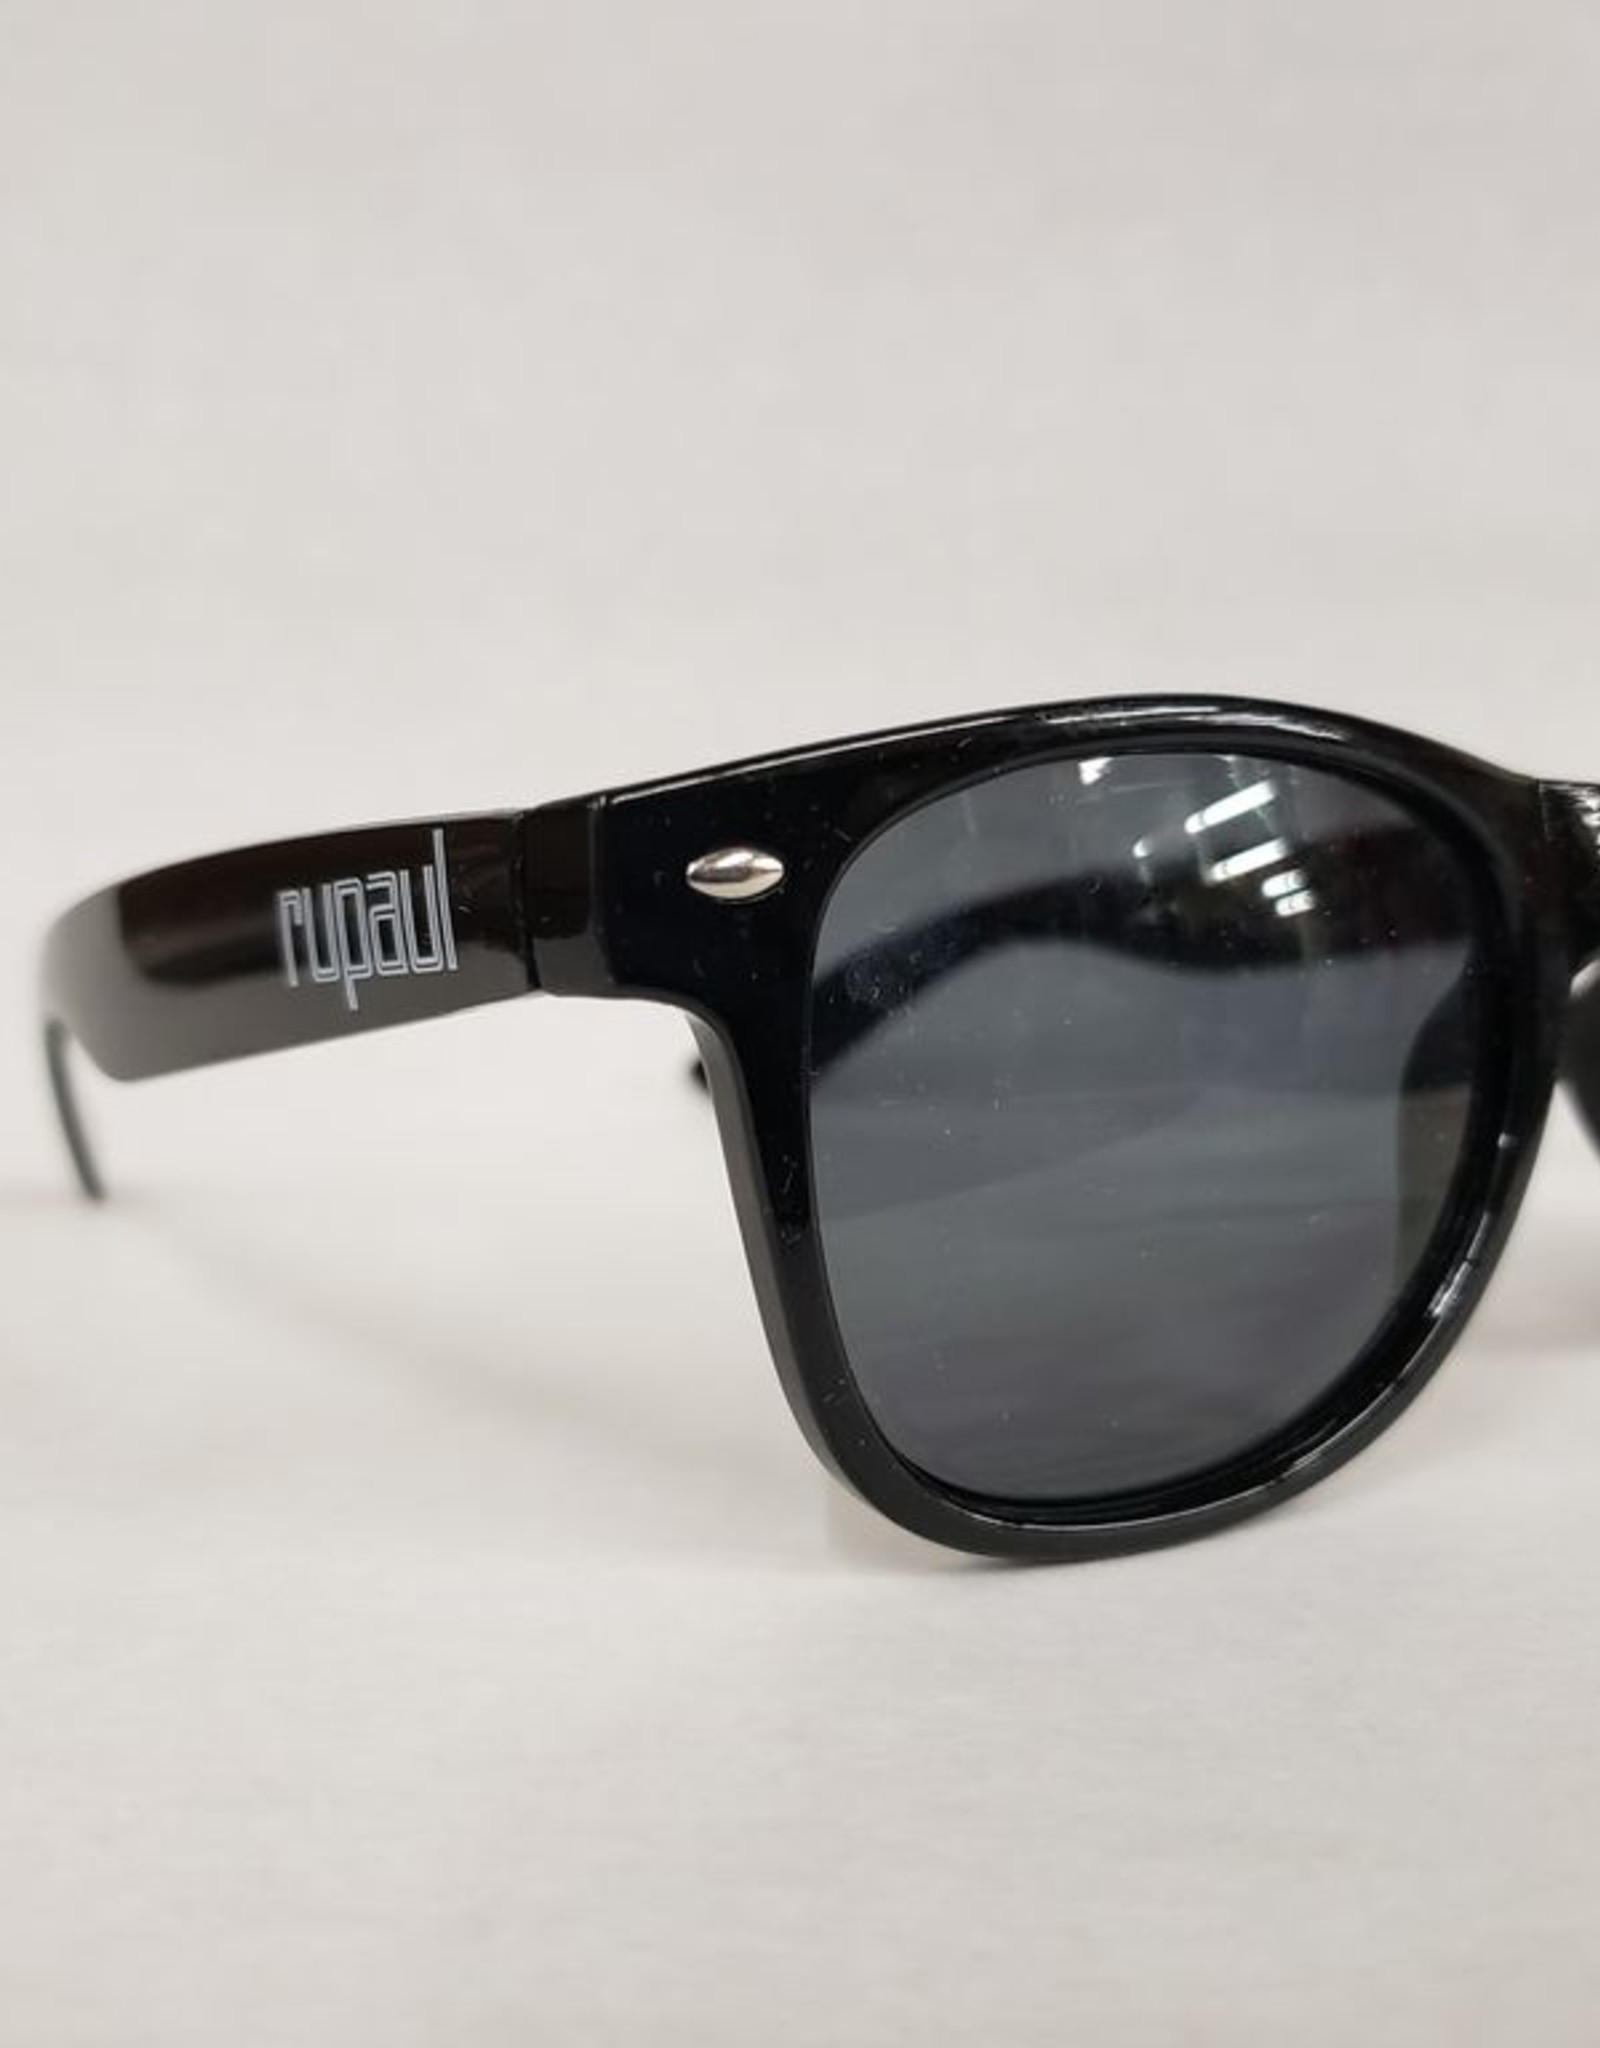 RuPaul Sunglasses -Black w/ White logo